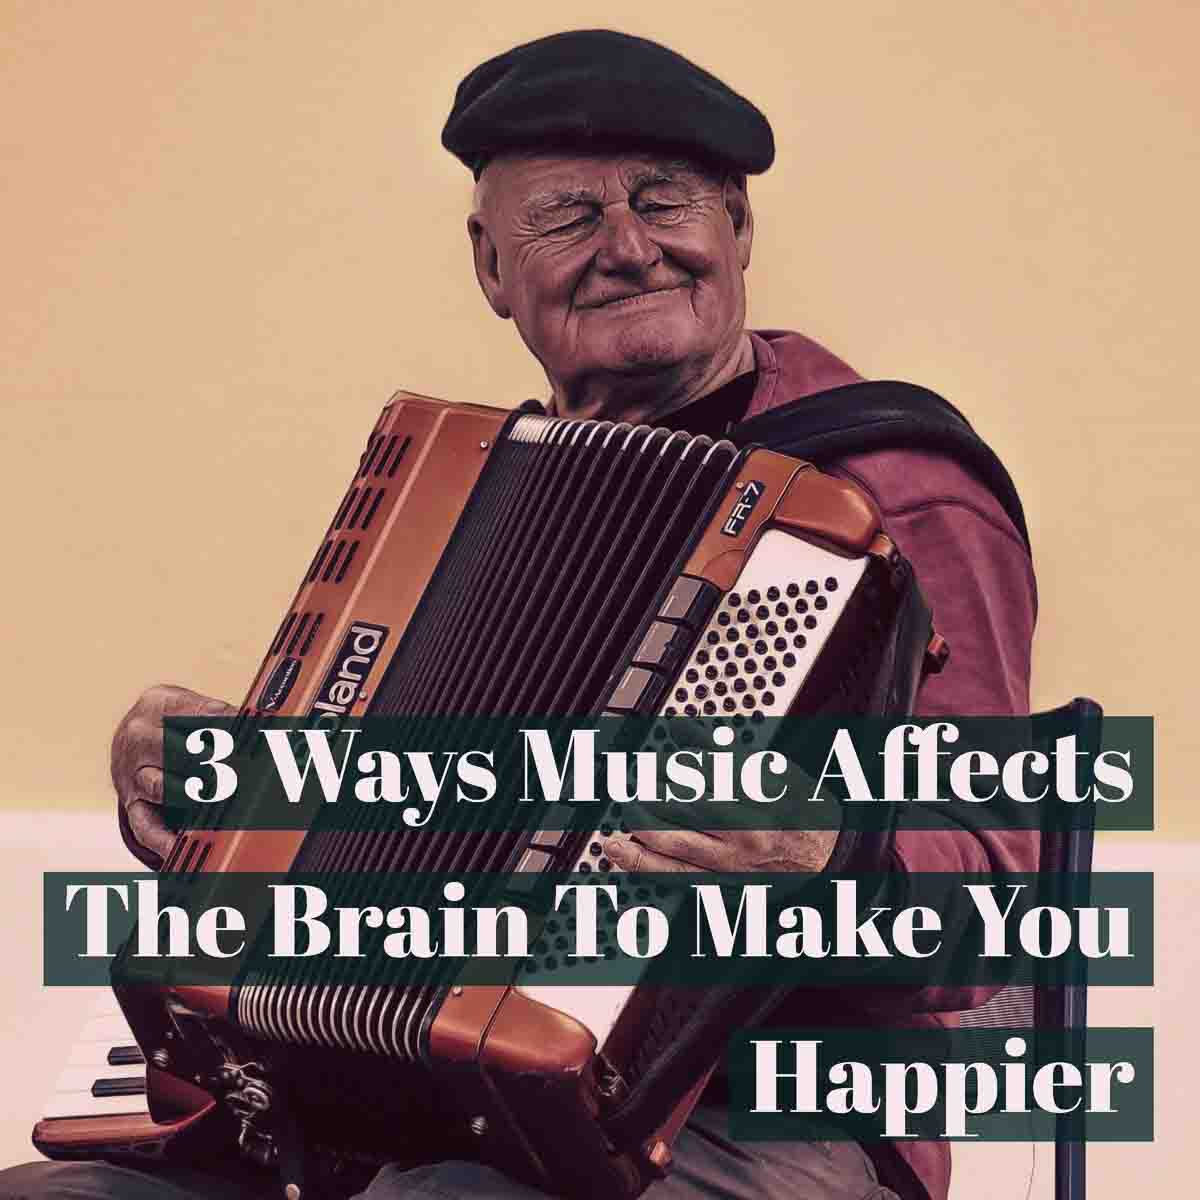 3 Ways Music Affects The Brain Make You Happier